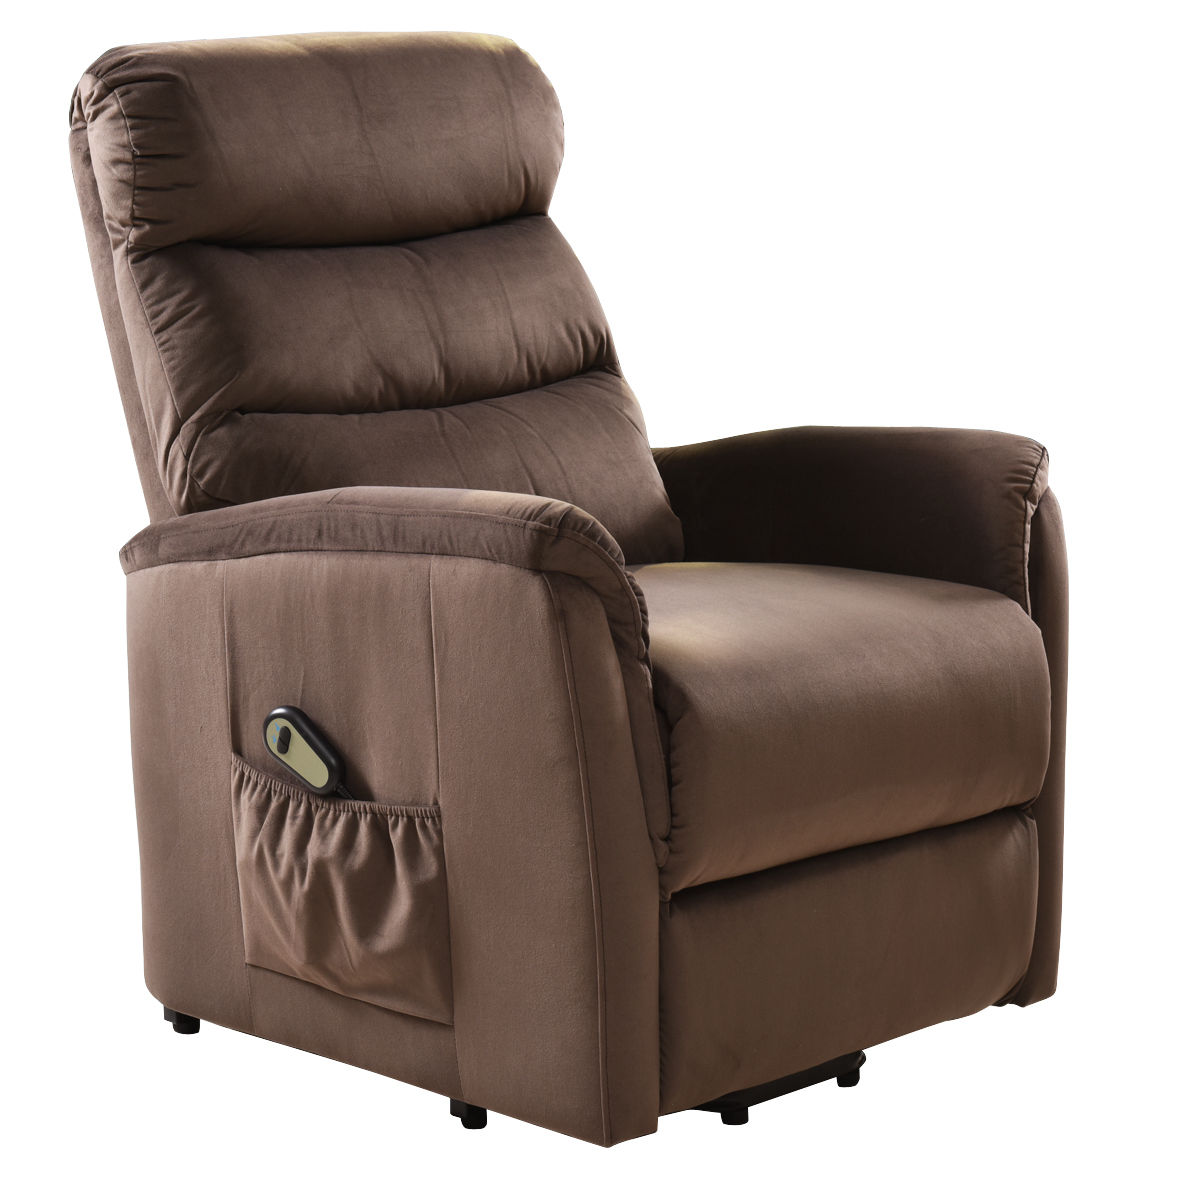 Living Room Furniture Chairs recliner chair lift